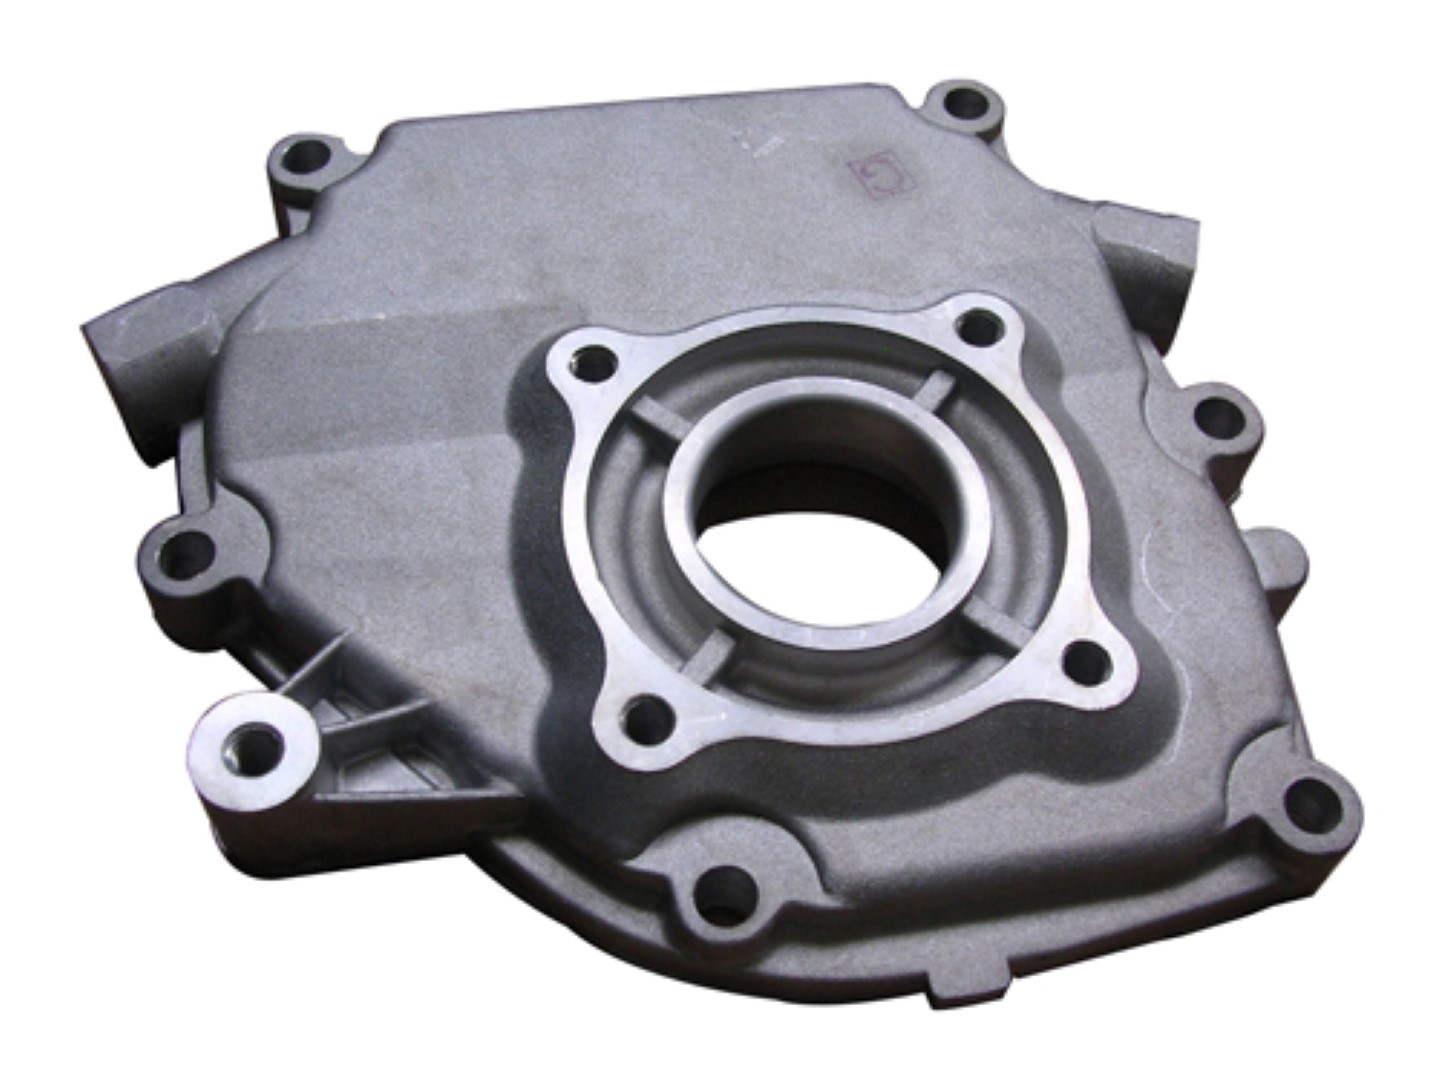 Proven Part GX340 Crankcase Cover